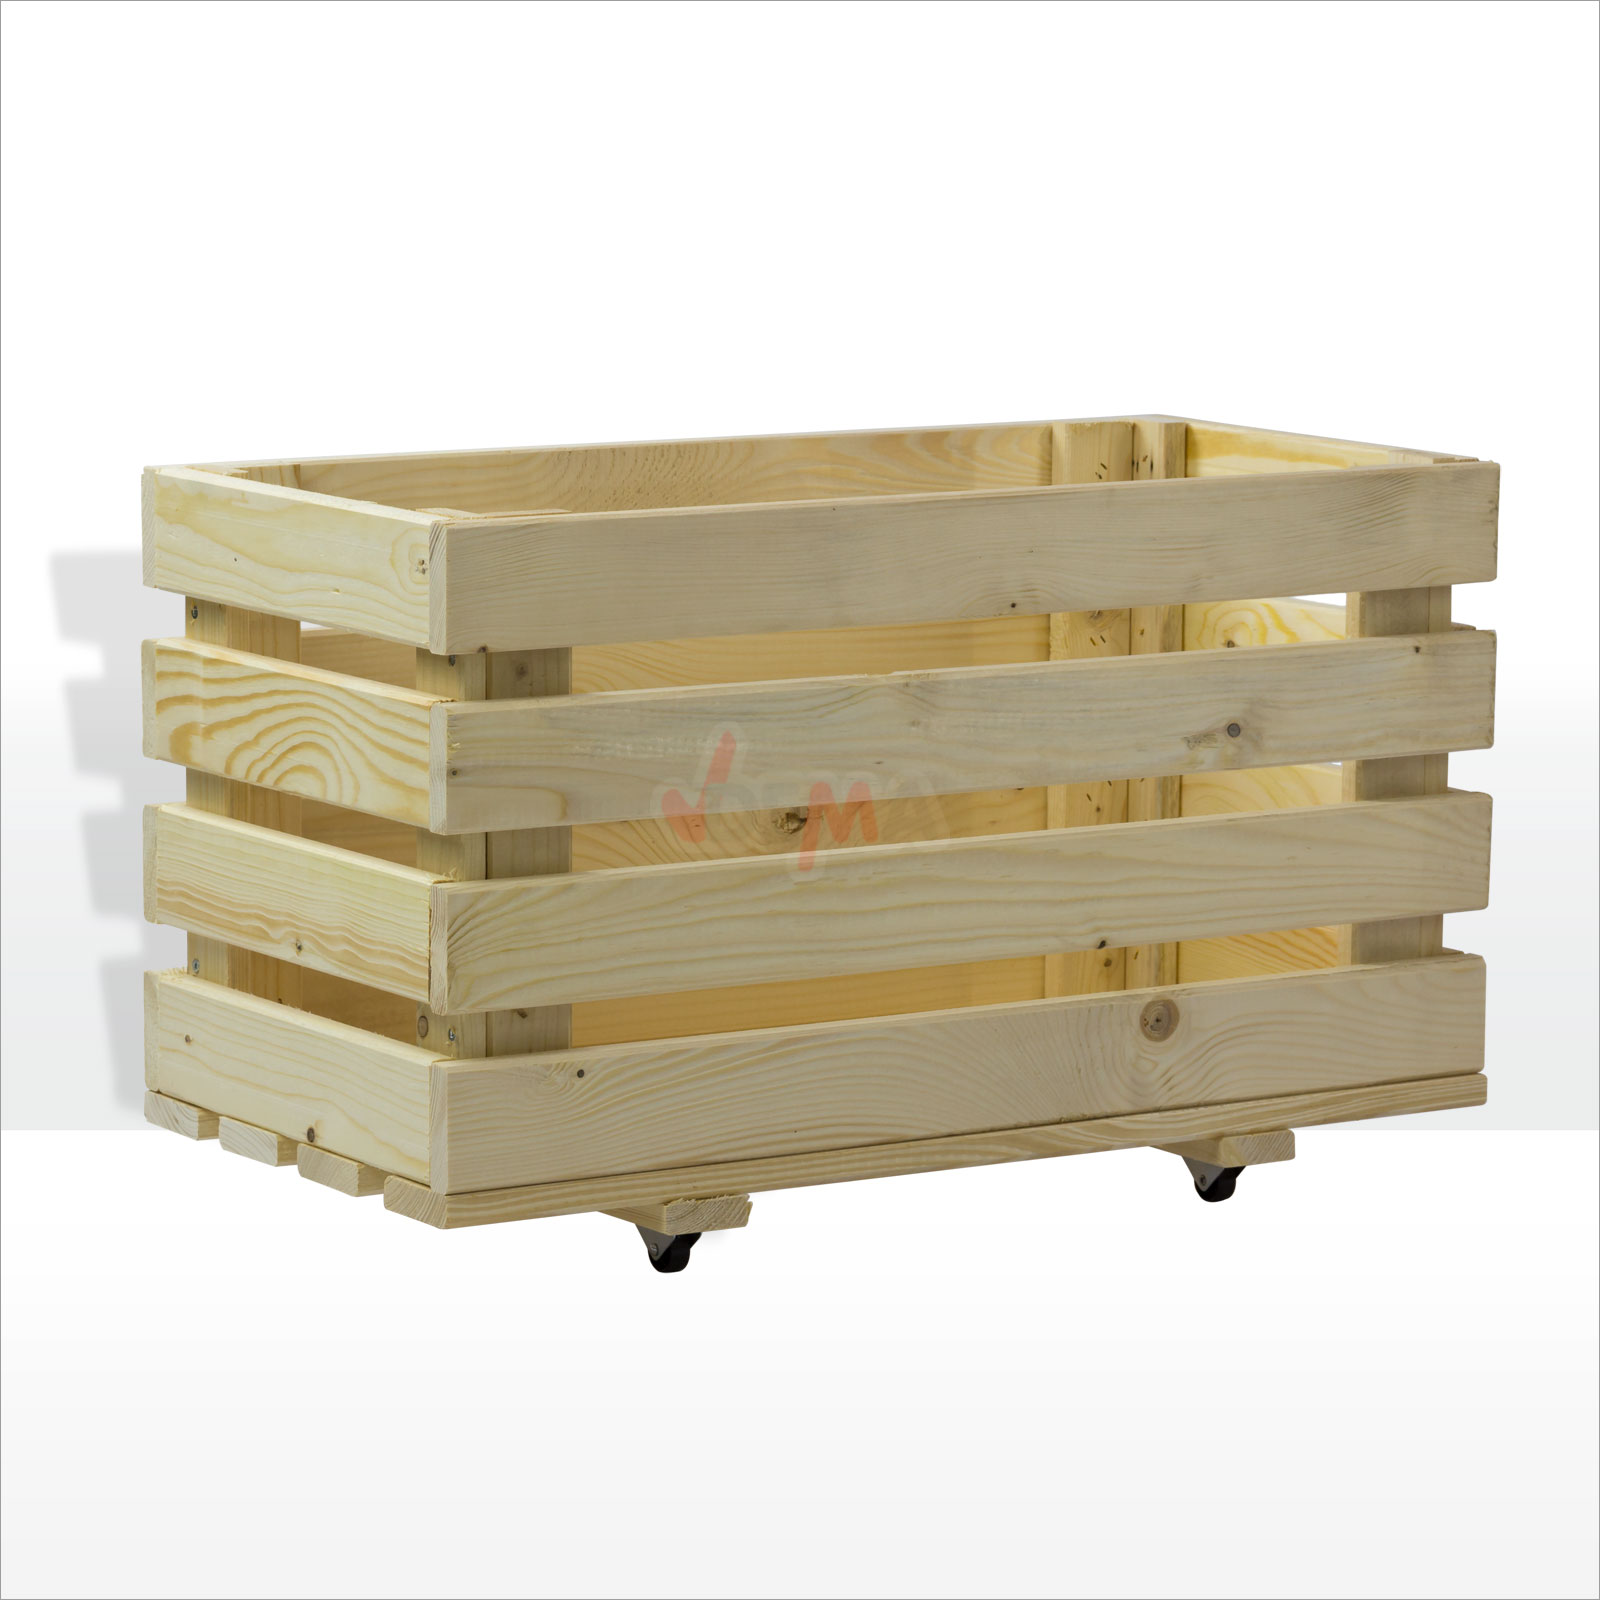 919529 holz rollkiste spielzeugkiste mobile holzbox allzweckkiste 66 x 34 x 40cm ebay. Black Bedroom Furniture Sets. Home Design Ideas